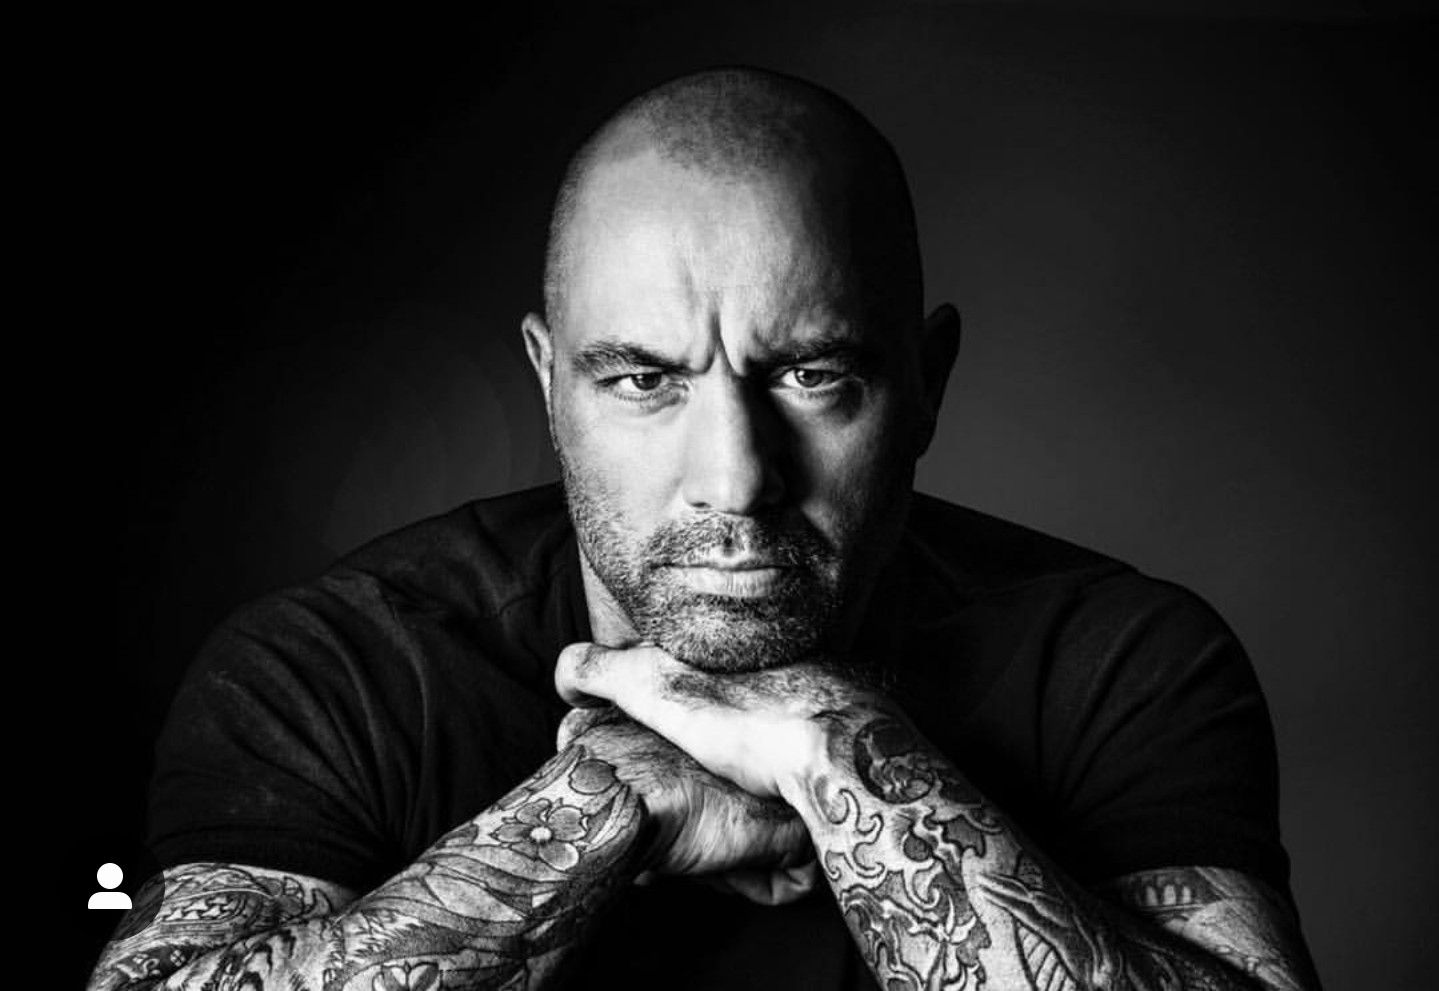 Joerogan Joe Rogan Portrait Tattoo Fictional Characters